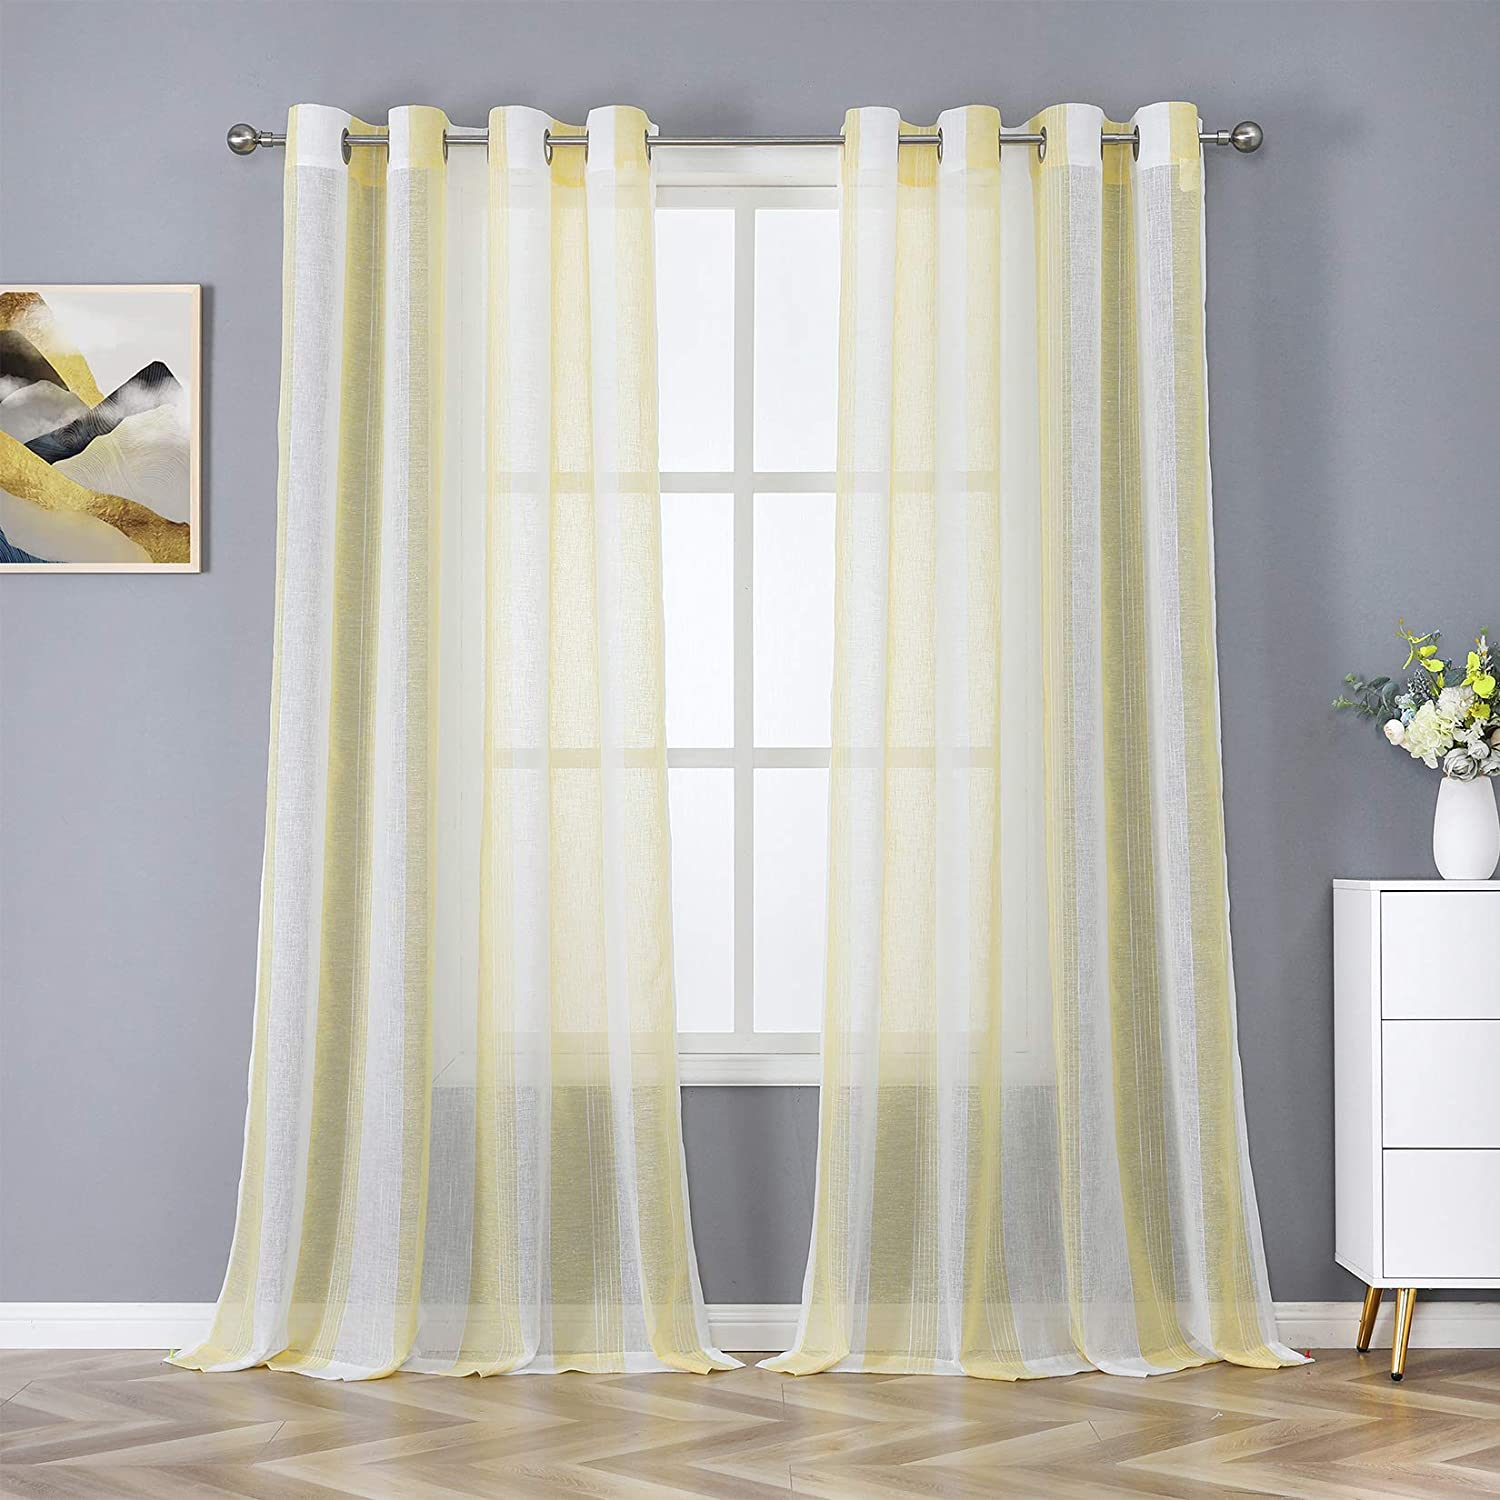 Haperlare Yellow and White Sheer Curtains 84 inches Kids Room Vertical Striped Sheer Drapes Farmhouse Yarn Dyed Faux Linen Textured Home Decor Window Covering for Living Room, 2 Panels